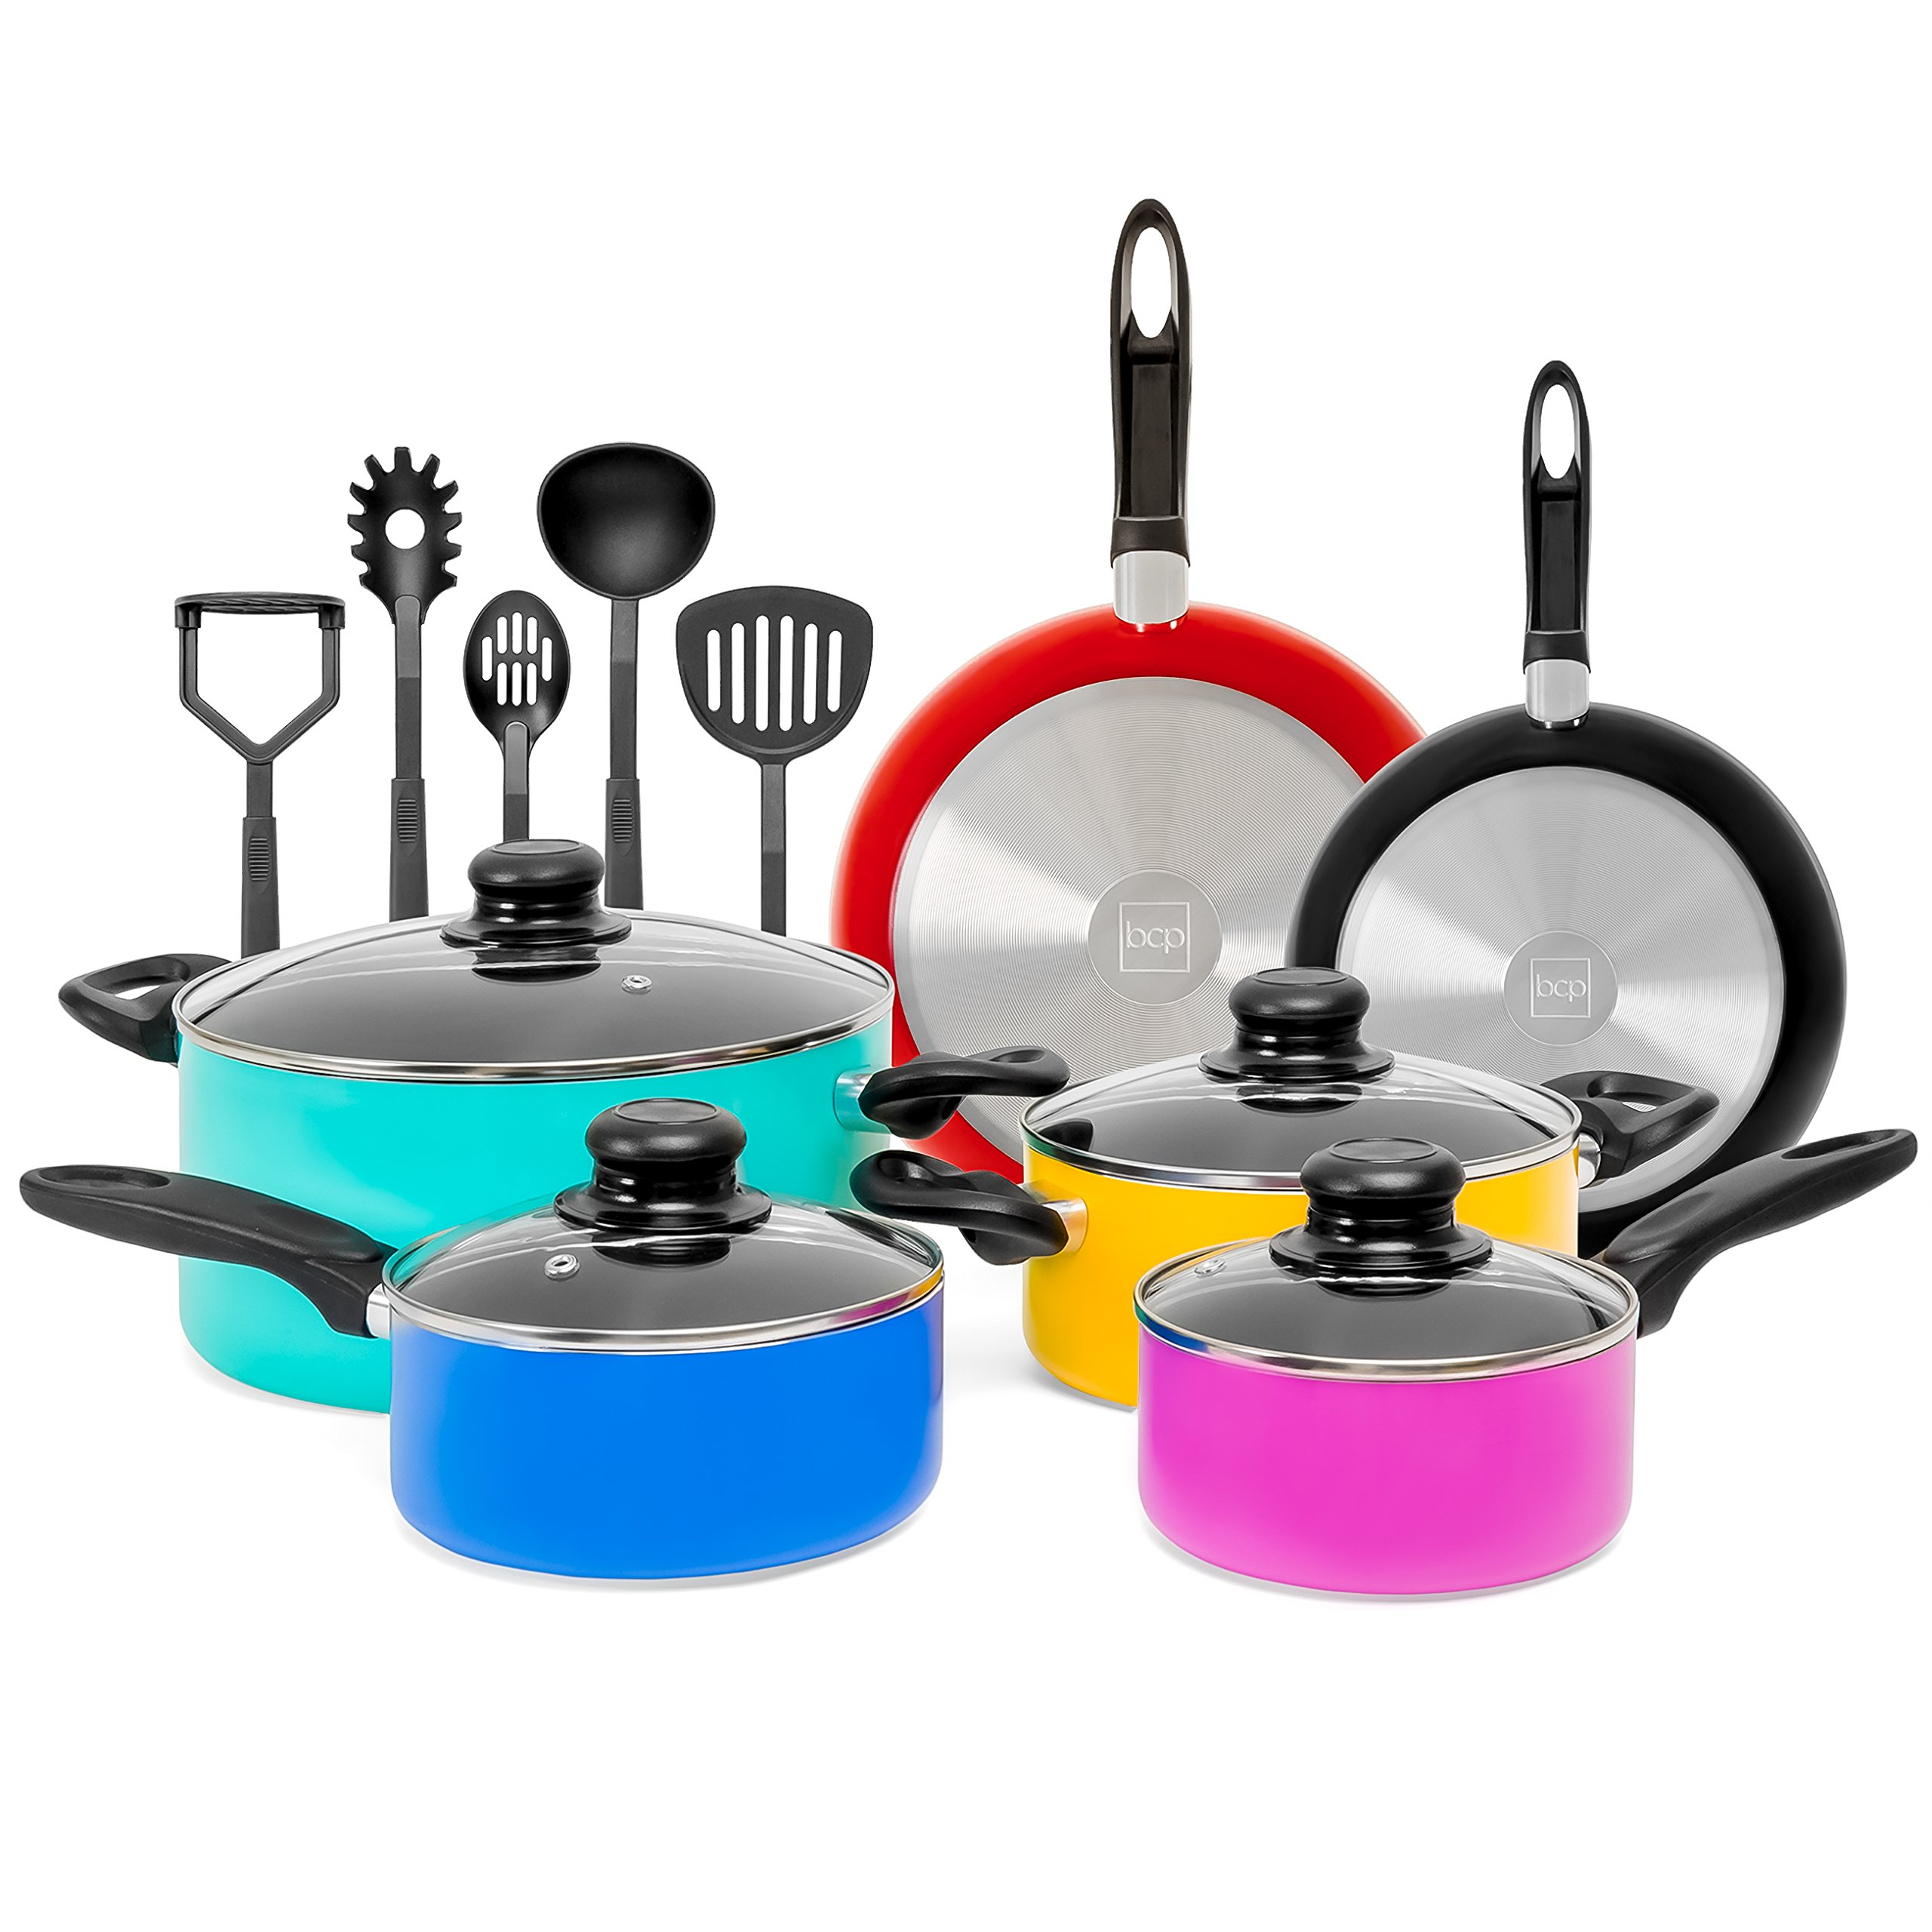 Best Choice Products 15-Piece Nonstick Cookware Kitchen Set w/ 4 Pots, 4 Lids, 2 Pans, 5 BPA Free Utensils - Multicolor by Best Choice Products (Image #1)